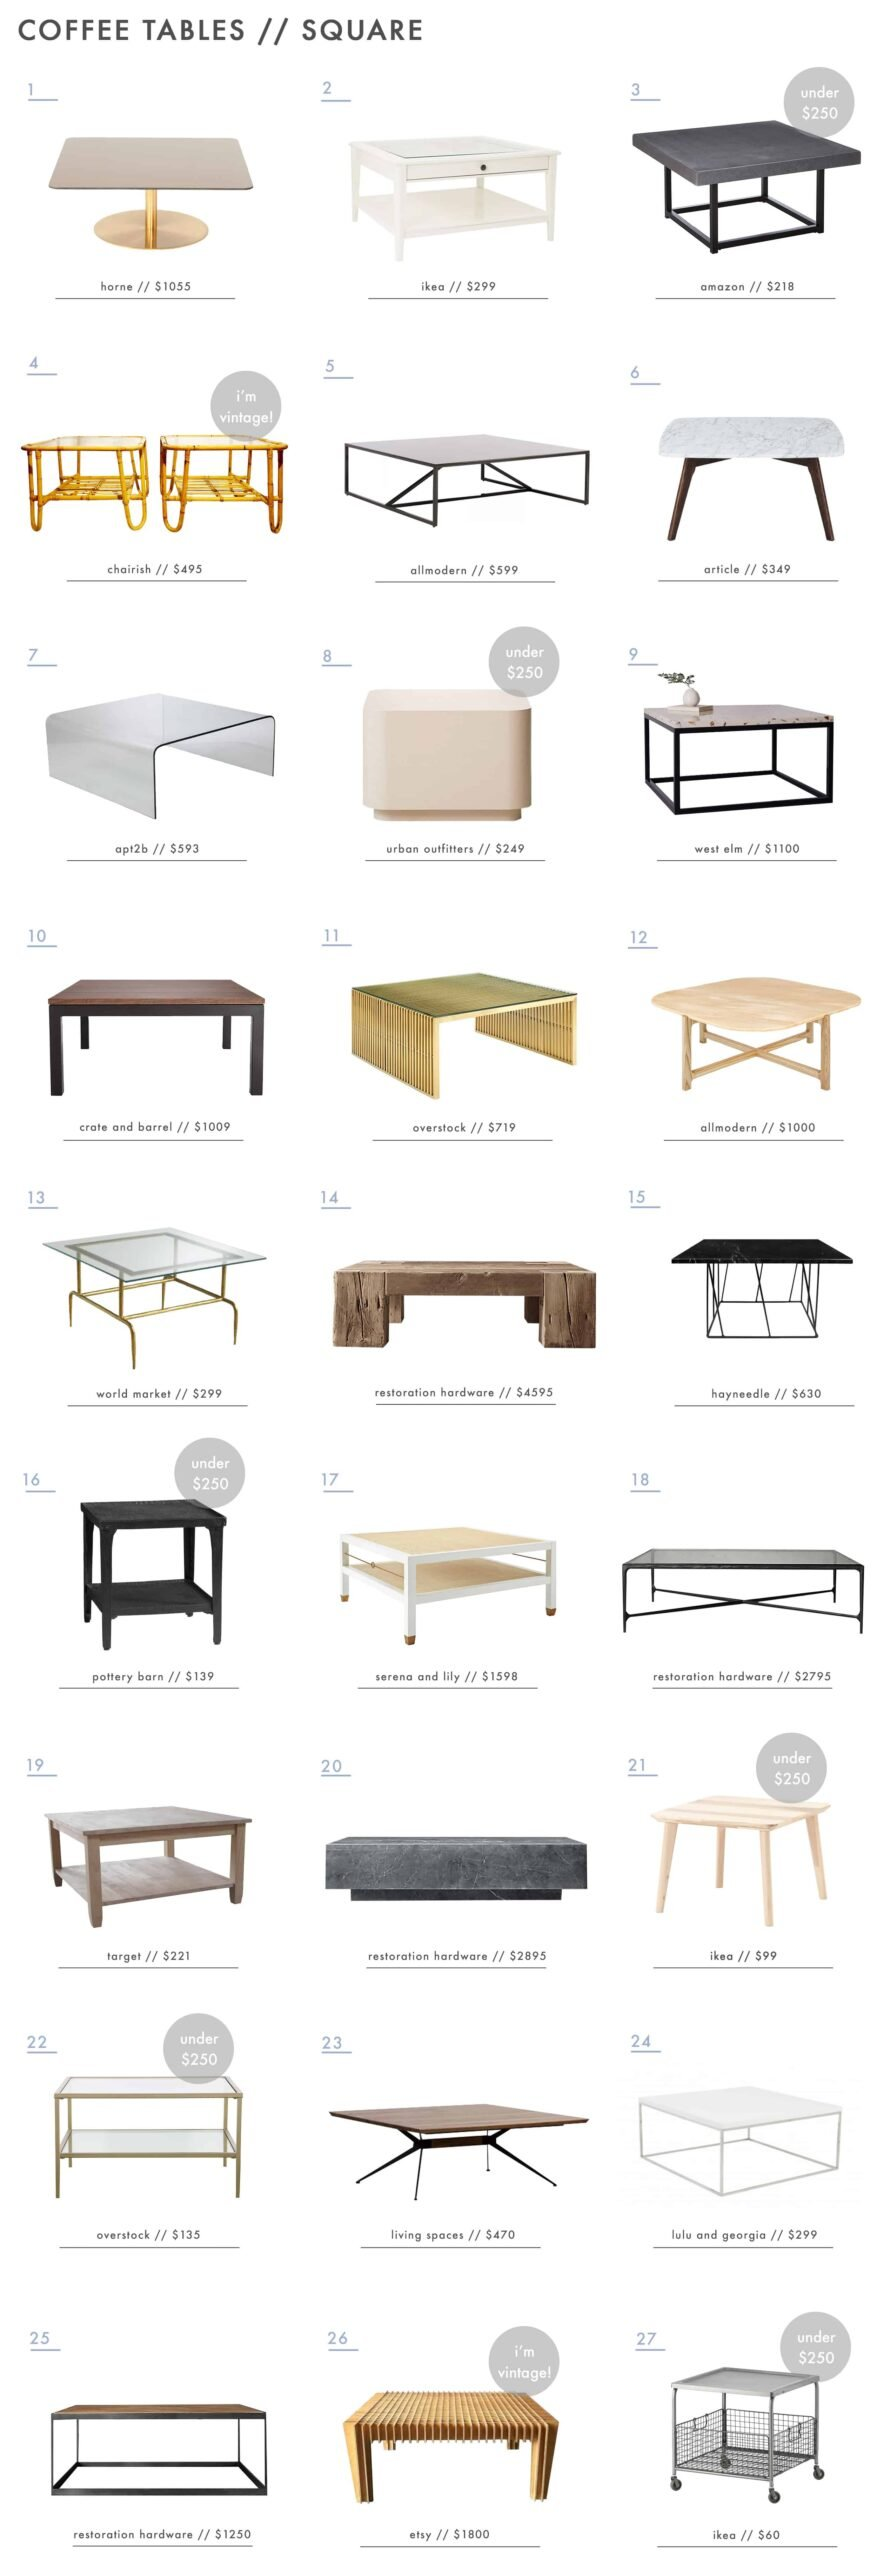 The Best Square Coffee Tables